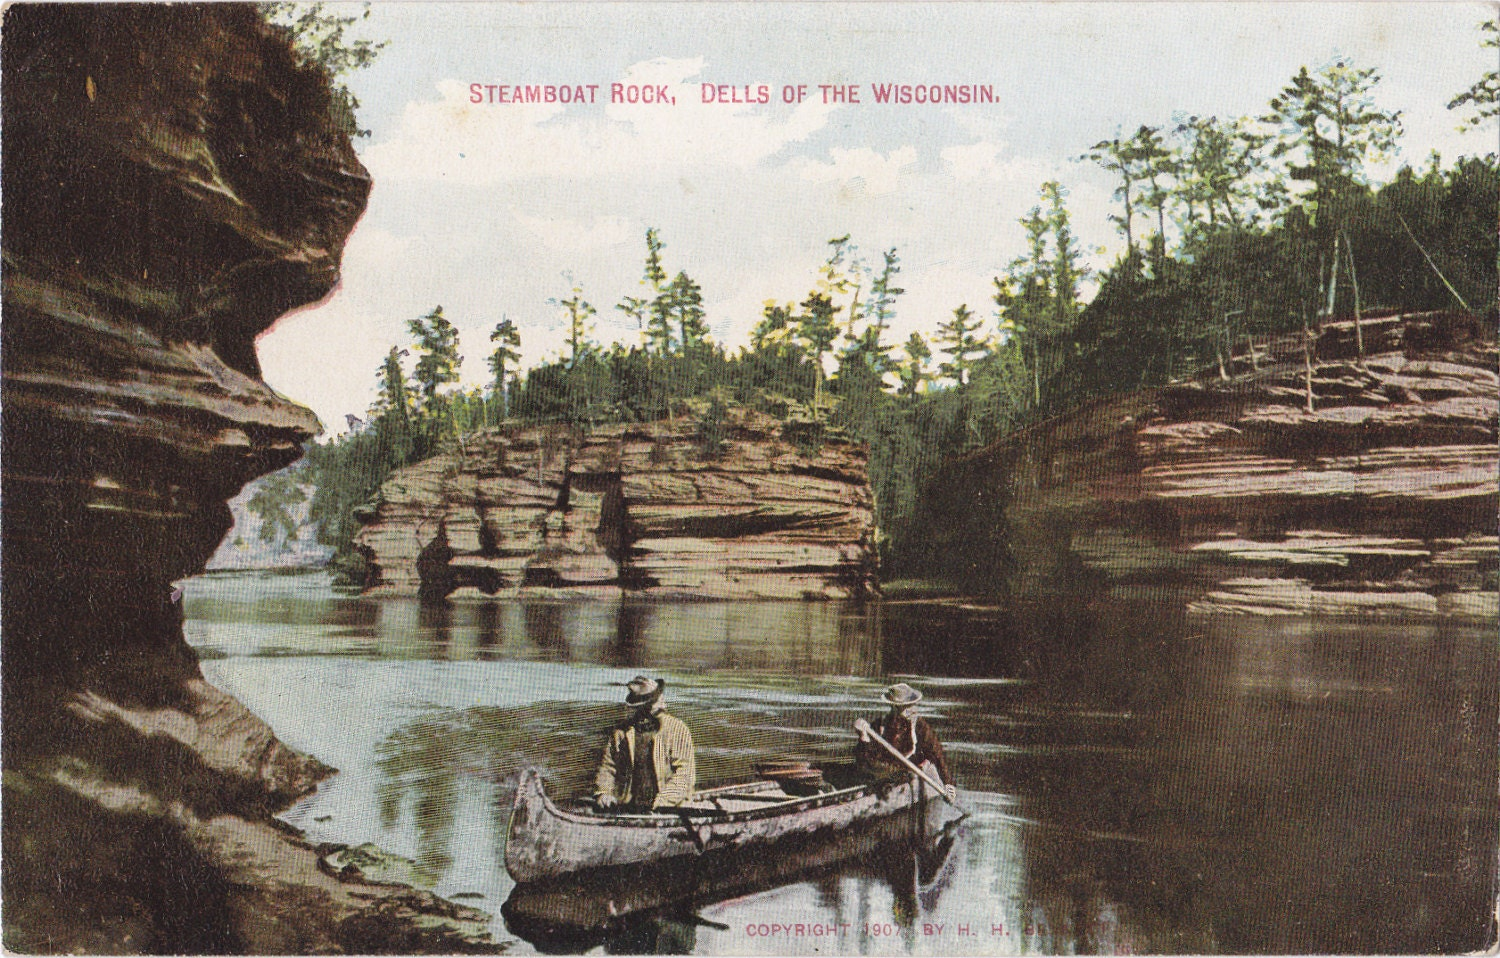 steamboat rock guys Steamboat rock change city news forums crime dating real-time news jobs obituaries entertainment photos shopping real estate coupons yellow pages local listings.